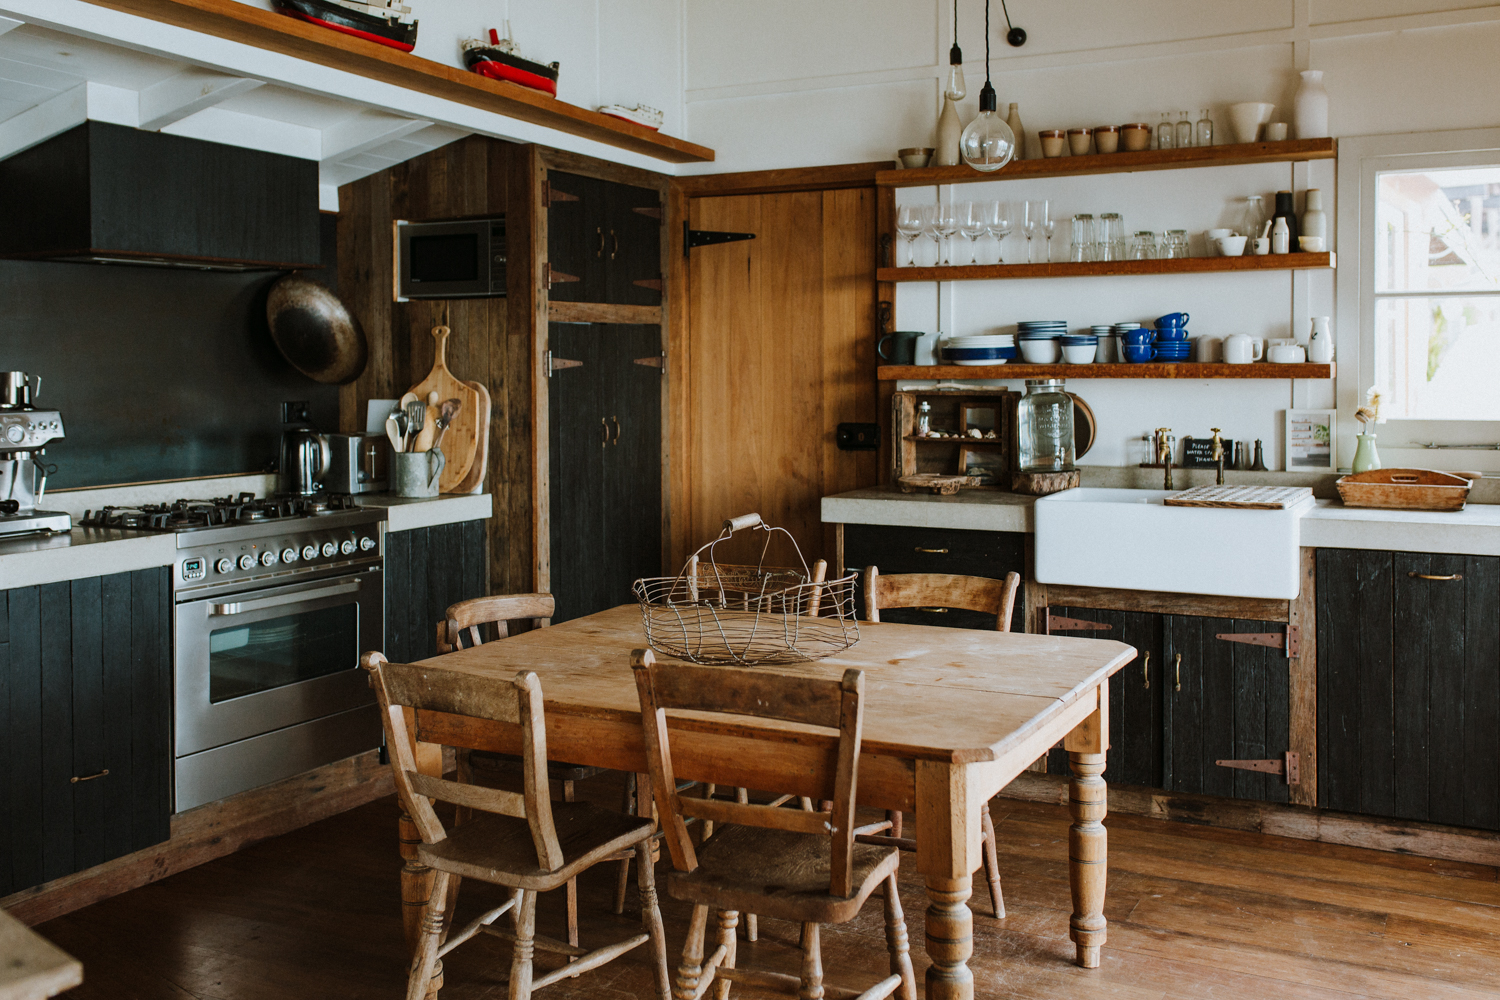 SHAYNE_ALLEN_LITTLE_BLACK_SHACK_LBS+kitchen.jpg